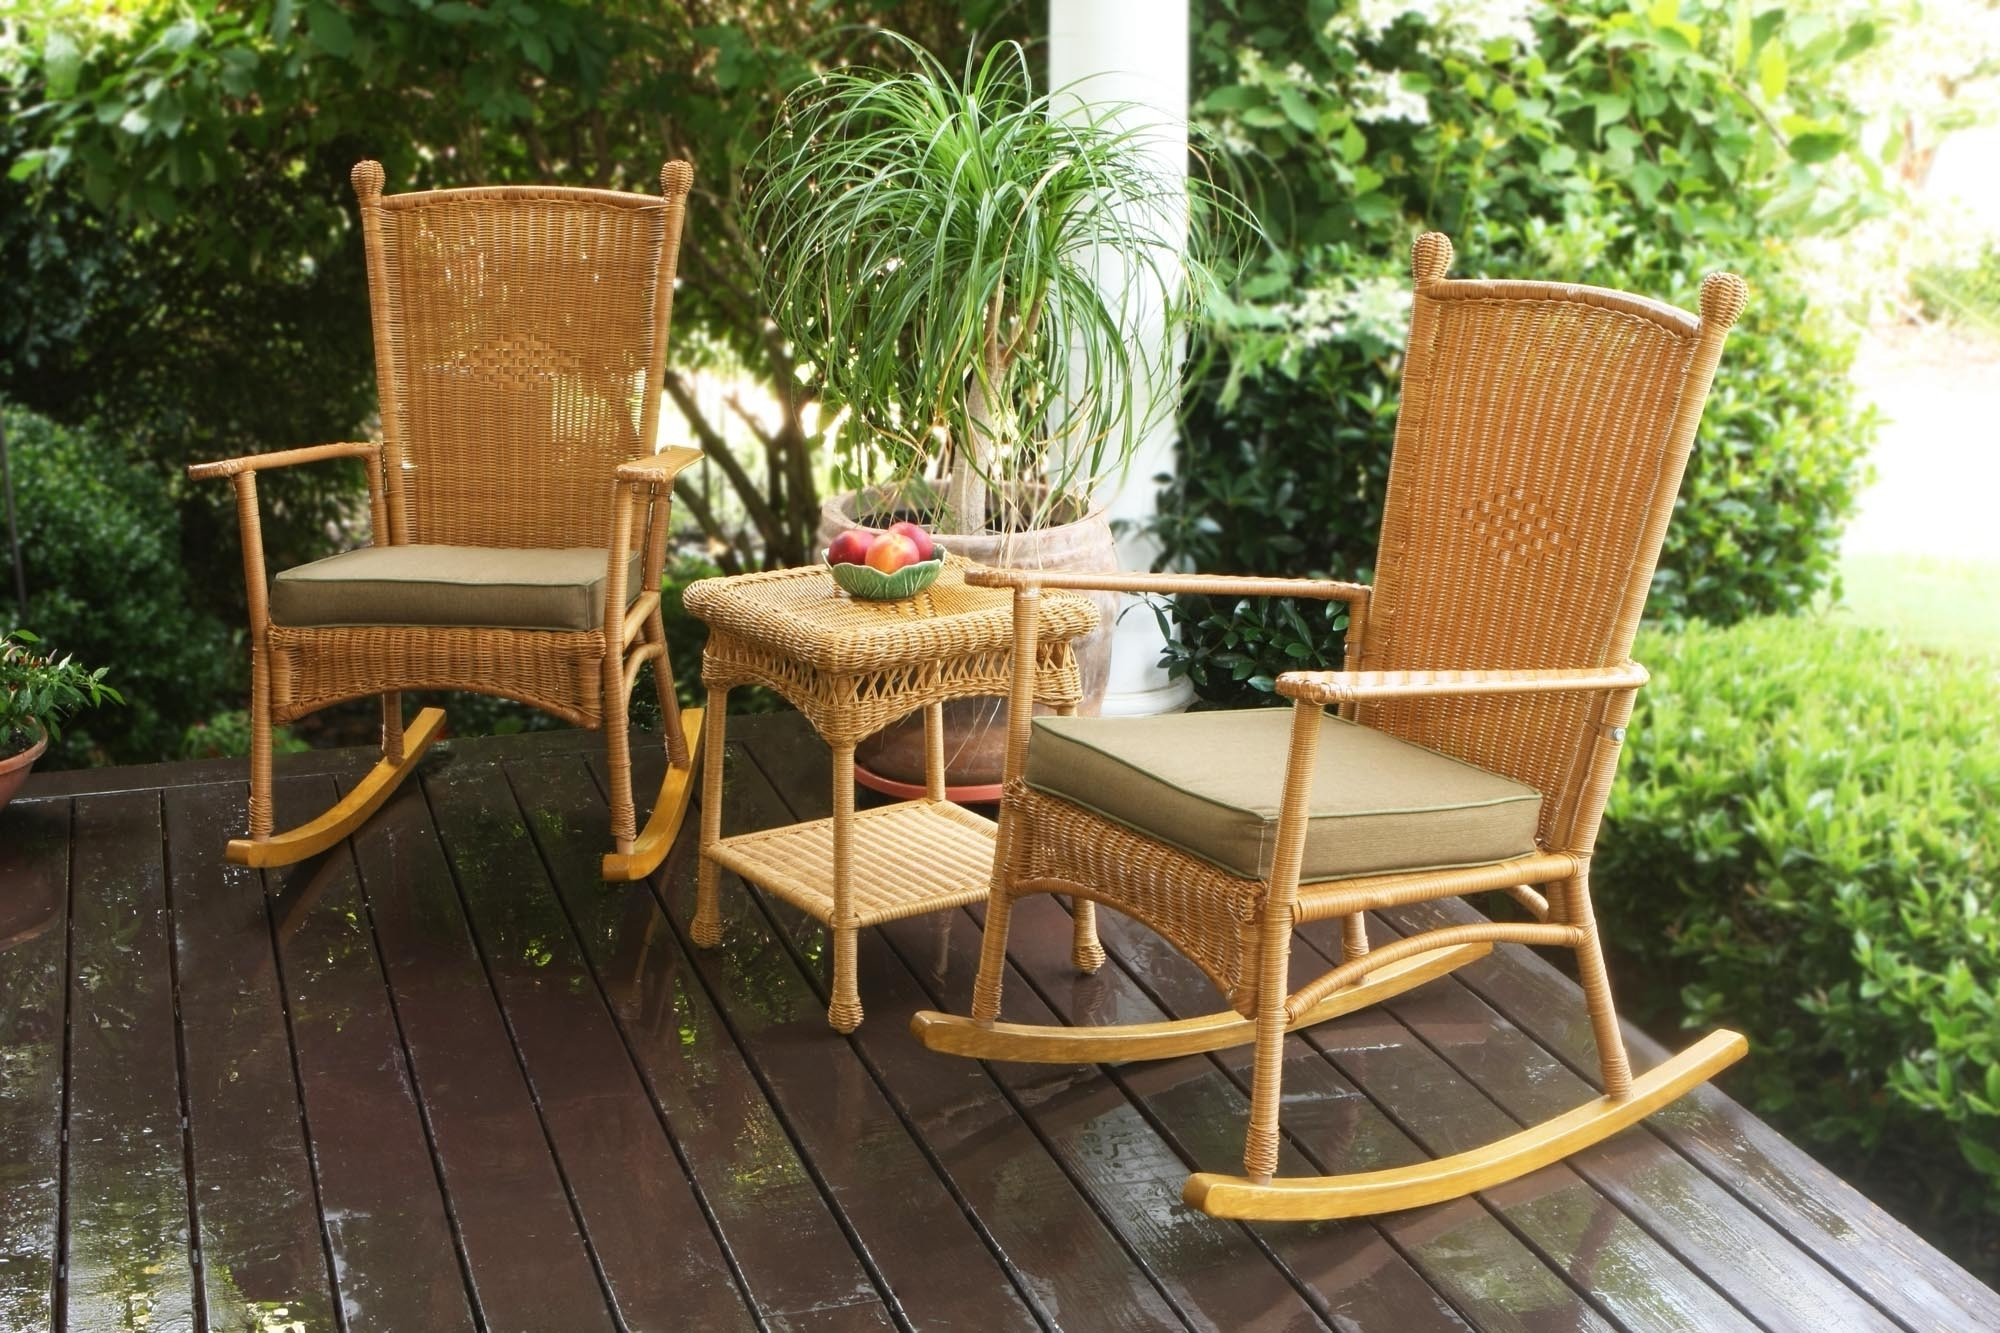 Most Current Outdoor Rocking Chair Garden Porch Furniture Rocker Patio Black Intended For Rocking Chairs For Garden (View 9 of 15)